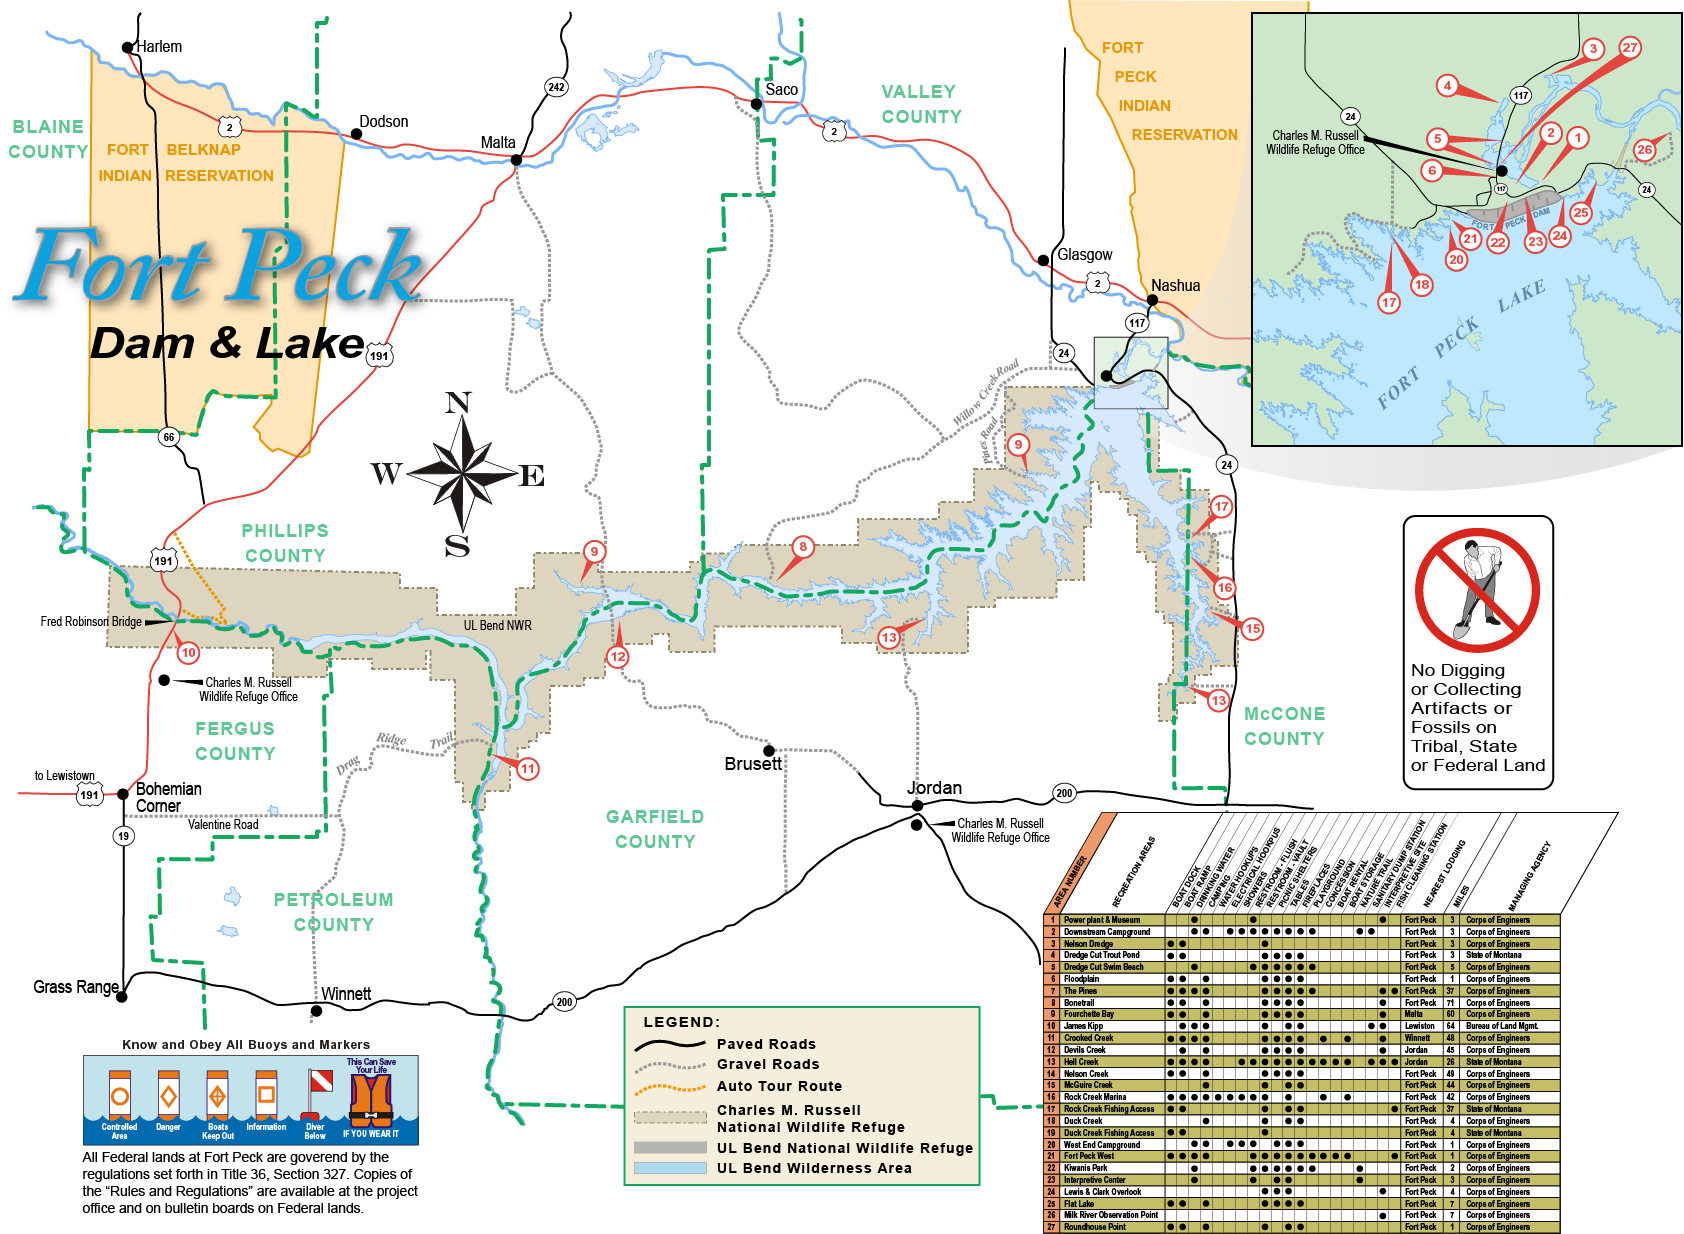 Omaha District Missions Dam And Lake Projects Missouri River - Missouri lakes map